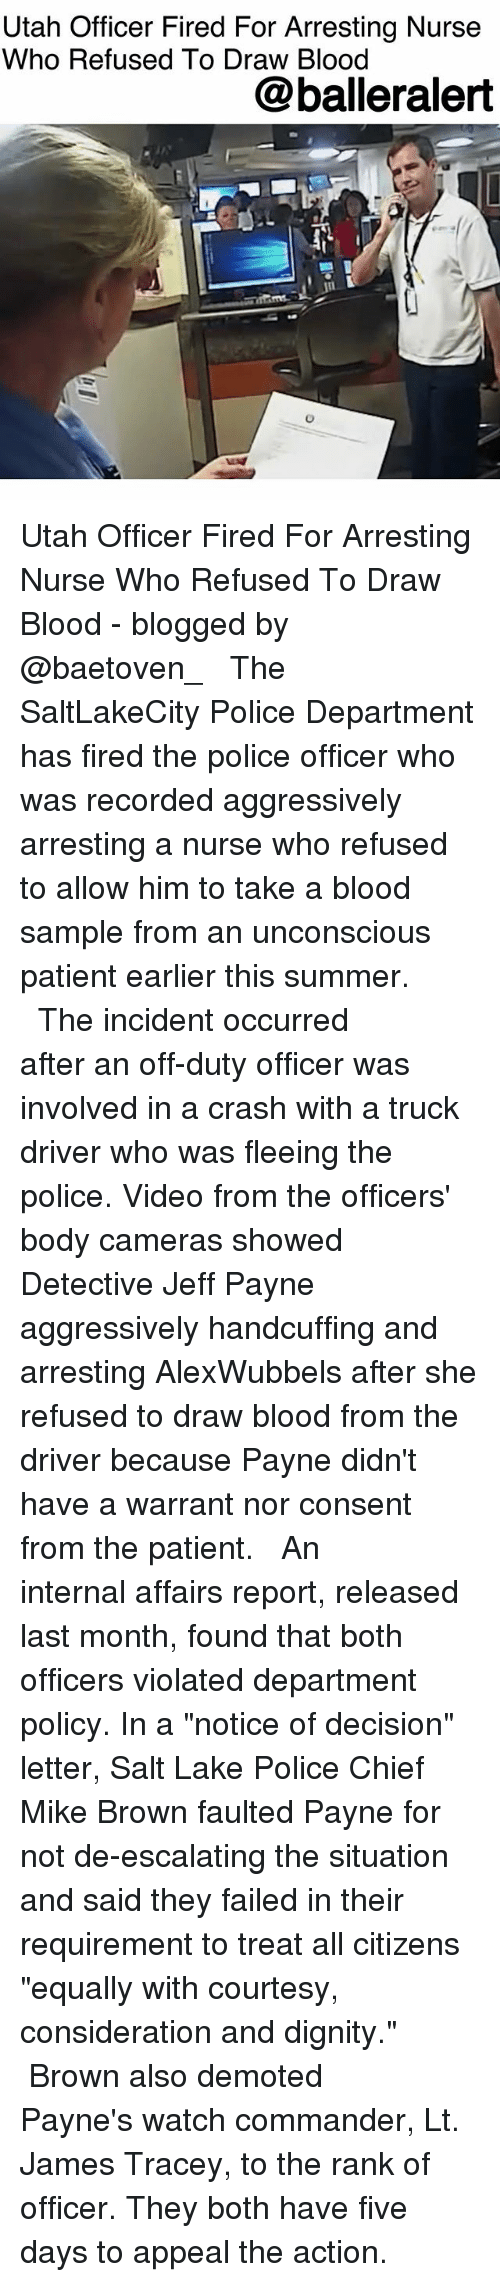 "Memes, Mike Brown, and Police: Utah Officer Fired For Arresting Nurse  Who Refused To Draw Blood  @balleralert  1 Utah Officer Fired For Arresting Nurse Who Refused To Draw Blood - blogged by @baetoven_ ⠀⠀⠀⠀⠀⠀⠀ ⠀⠀⠀⠀⠀⠀⠀ The SaltLakeCity Police Department has fired the police officer who was recorded aggressively arresting a nurse who refused to allow him to take a blood sample from an unconscious patient earlier this summer. ⠀⠀⠀⠀⠀⠀⠀ ⠀⠀⠀⠀⠀⠀⠀ The incident occurred after an off-duty officer was involved in a crash with a truck driver who was fleeing the police. Video from the officers' body cameras showed Detective Jeff Payne aggressively handcuffing and arresting AlexWubbels after she refused to draw blood from the driver because Payne didn't have a warrant nor consent from the patient. ⠀⠀⠀⠀⠀⠀⠀ ⠀⠀⠀⠀⠀⠀⠀ An internal affairs report, released last month, found that both officers violated department policy. In a ""notice of decision"" letter, Salt Lake Police Chief Mike Brown faulted Payne for not de-escalating the situation and said they failed in their requirement to treat all citizens ""equally with courtesy, consideration and dignity."" ⠀⠀⠀⠀⠀⠀⠀ ⠀⠀⠀⠀⠀⠀⠀ Brown also demoted Payne's watch commander, Lt. James Tracey, to the rank of officer. They both have five days to appeal the action."